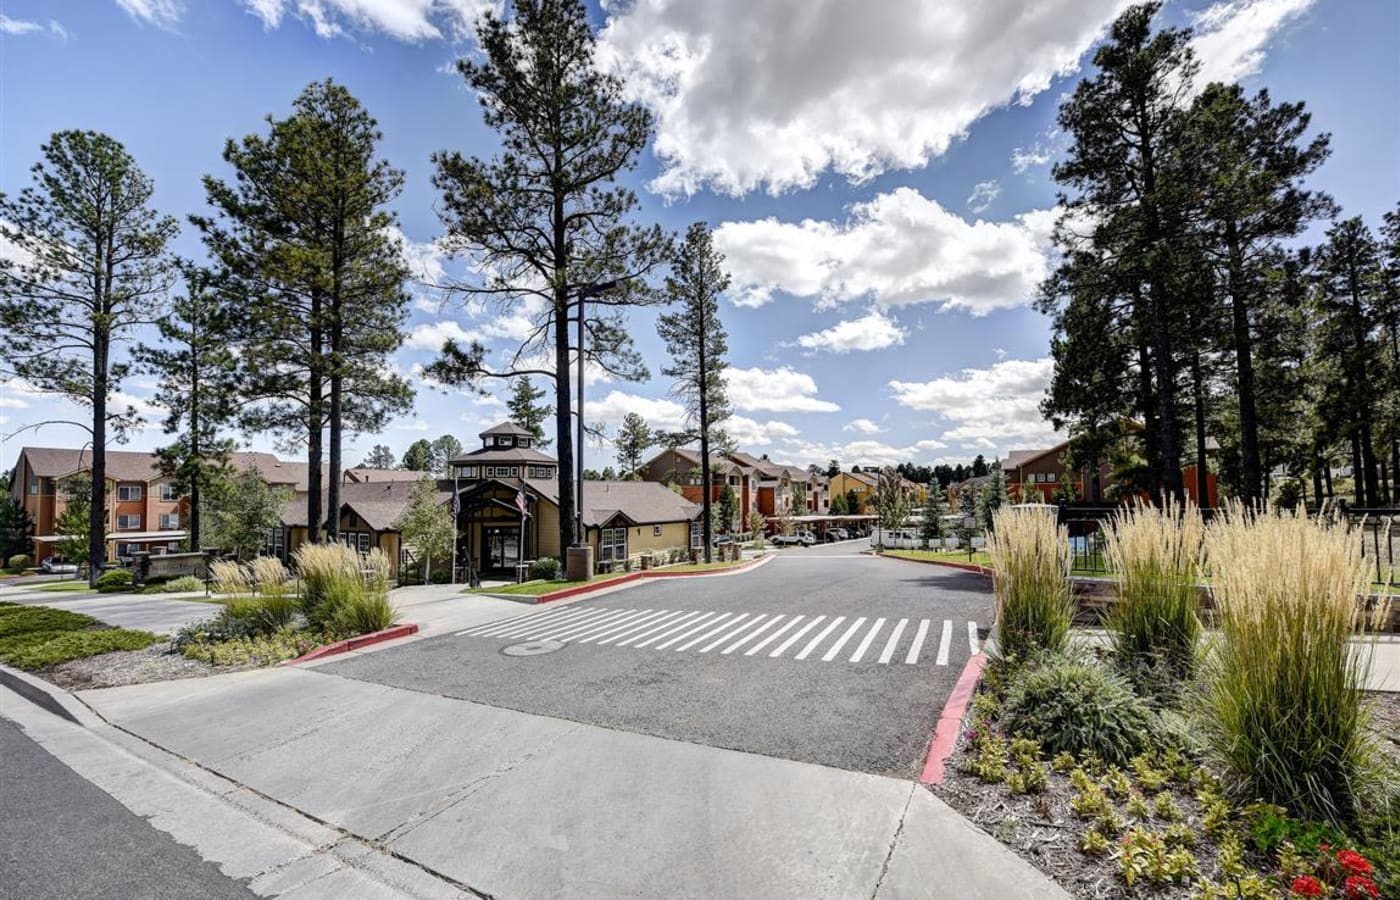 Entrance to Sterling Pointe in Flagstaff, AZ